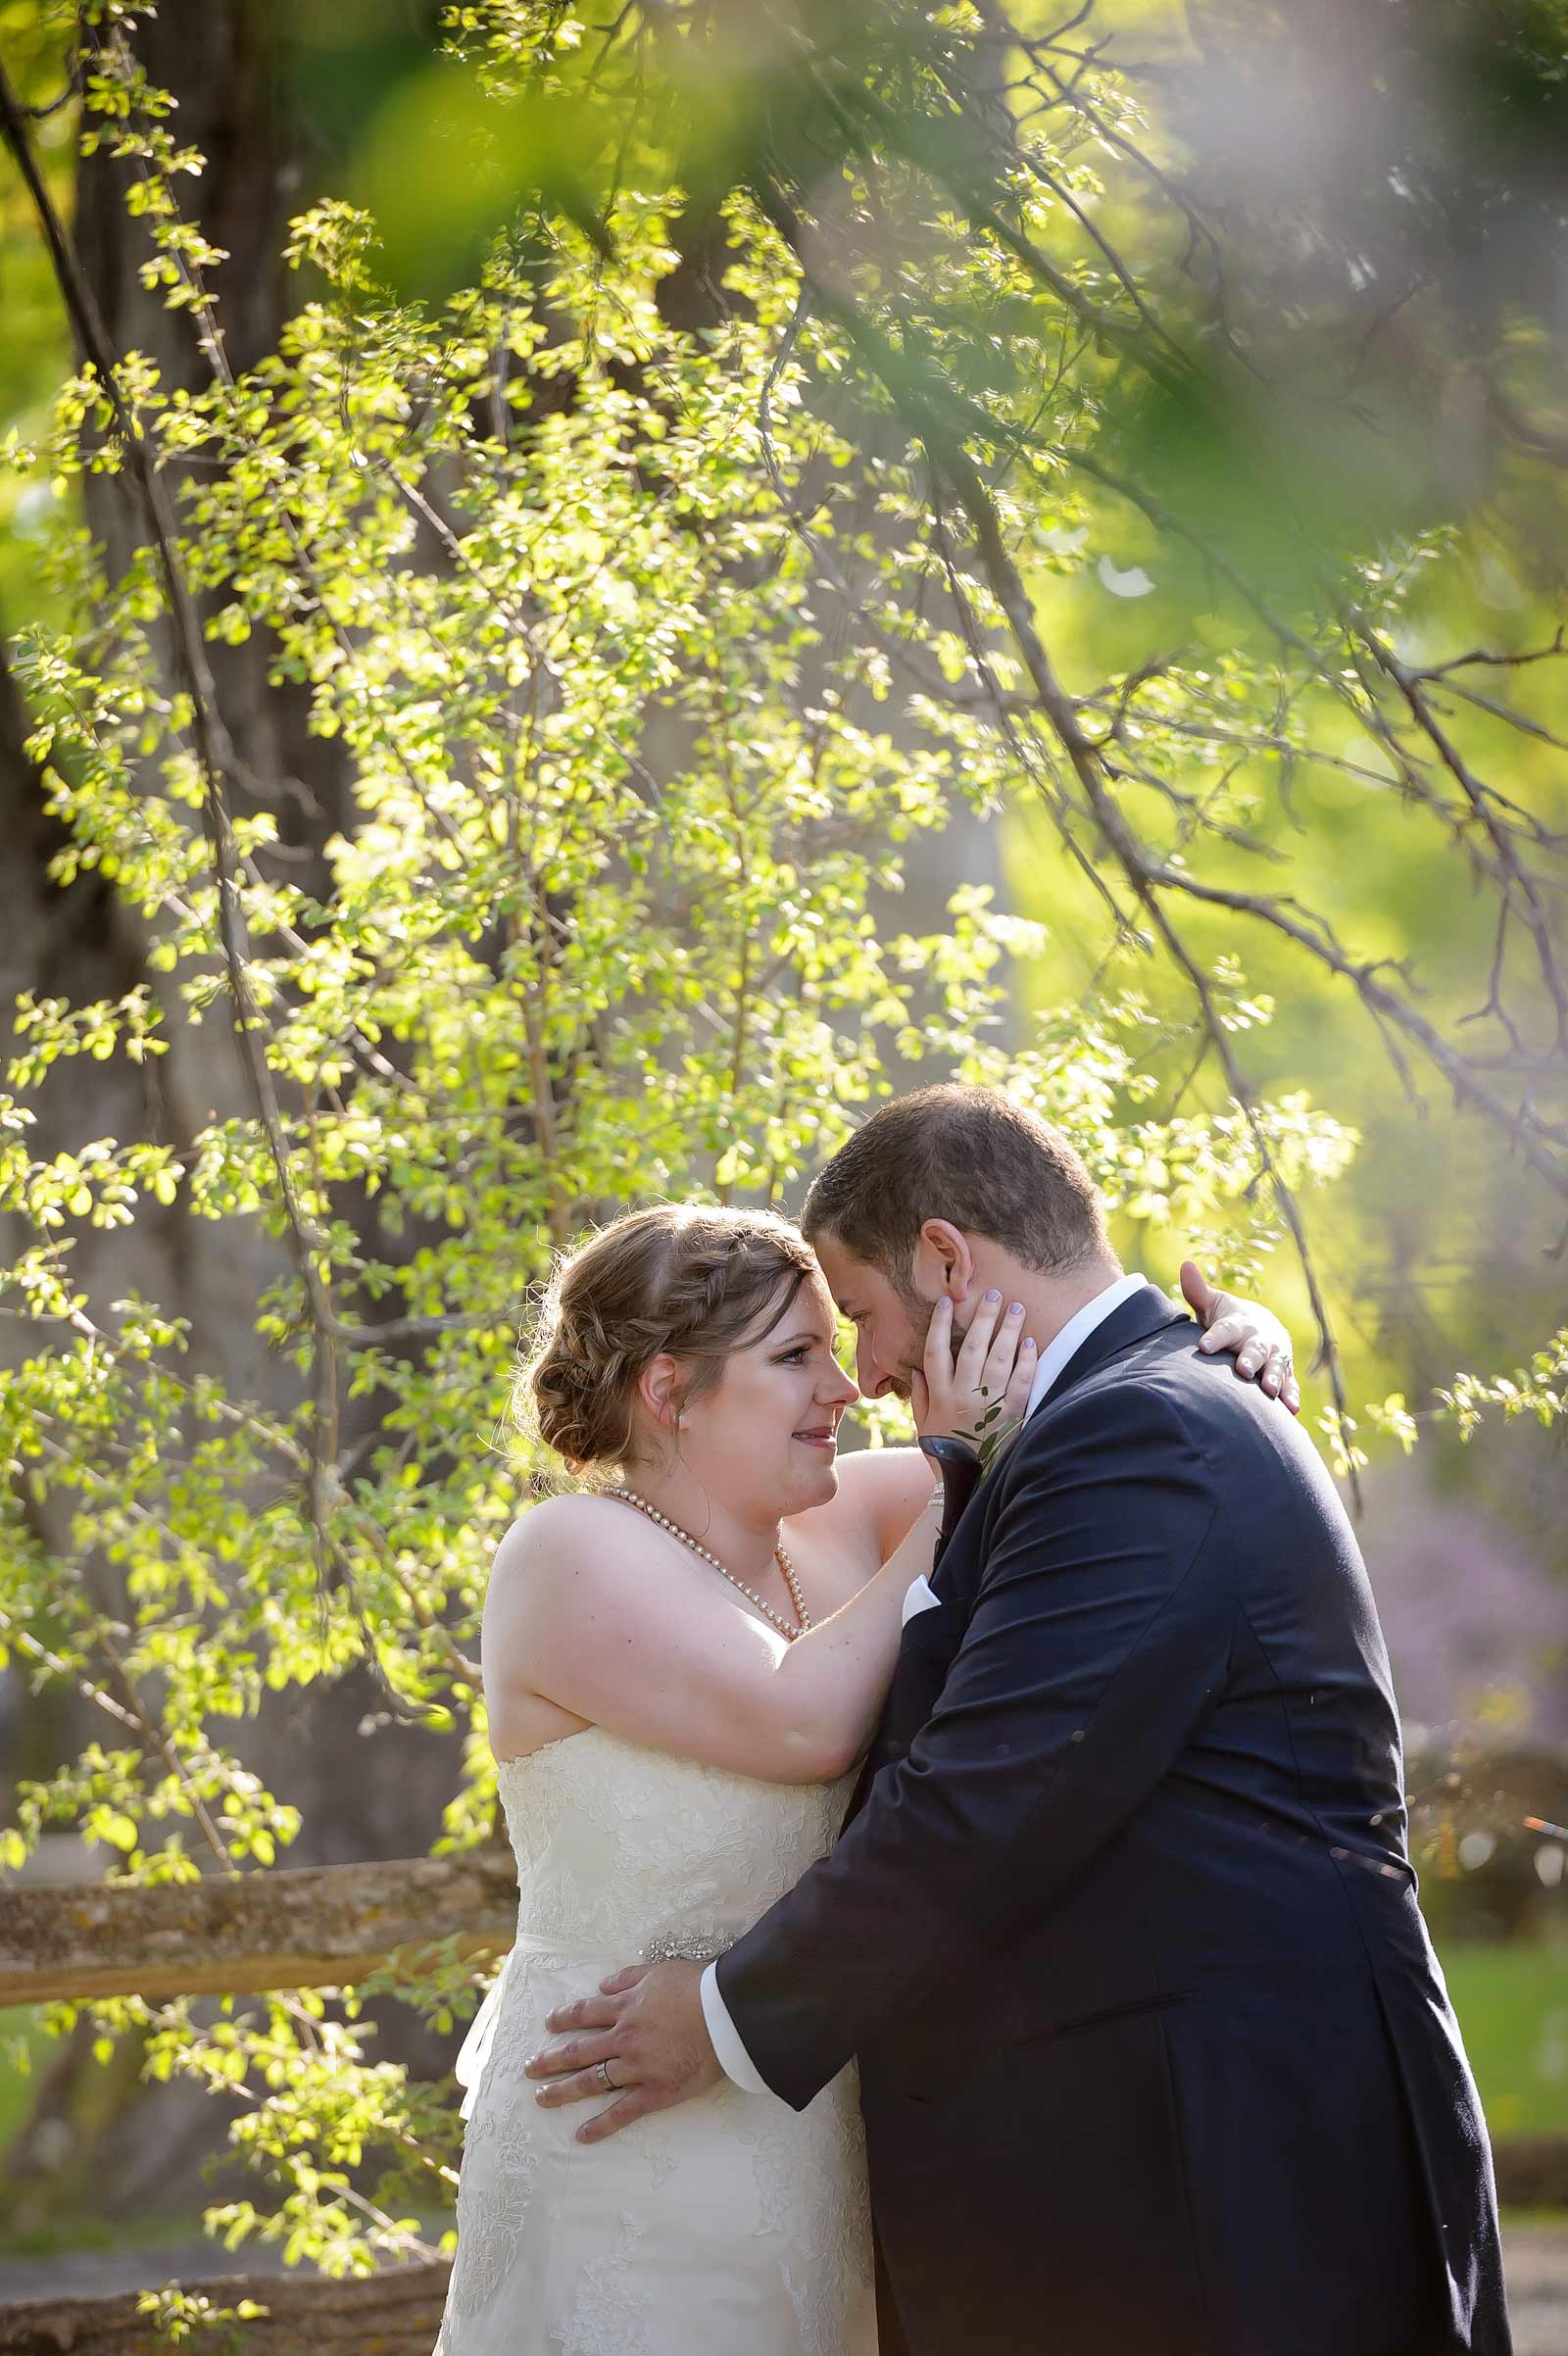 LaurenMike-Wedding-BrideGroomPortraits-24